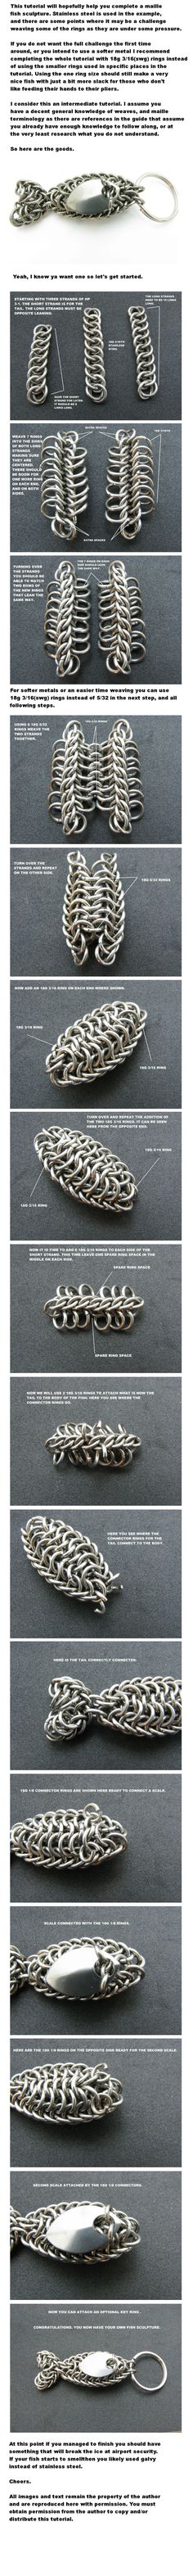 Fish Key Ring Chainmaille Tutorial by BorealisMetalWorks on deviantART